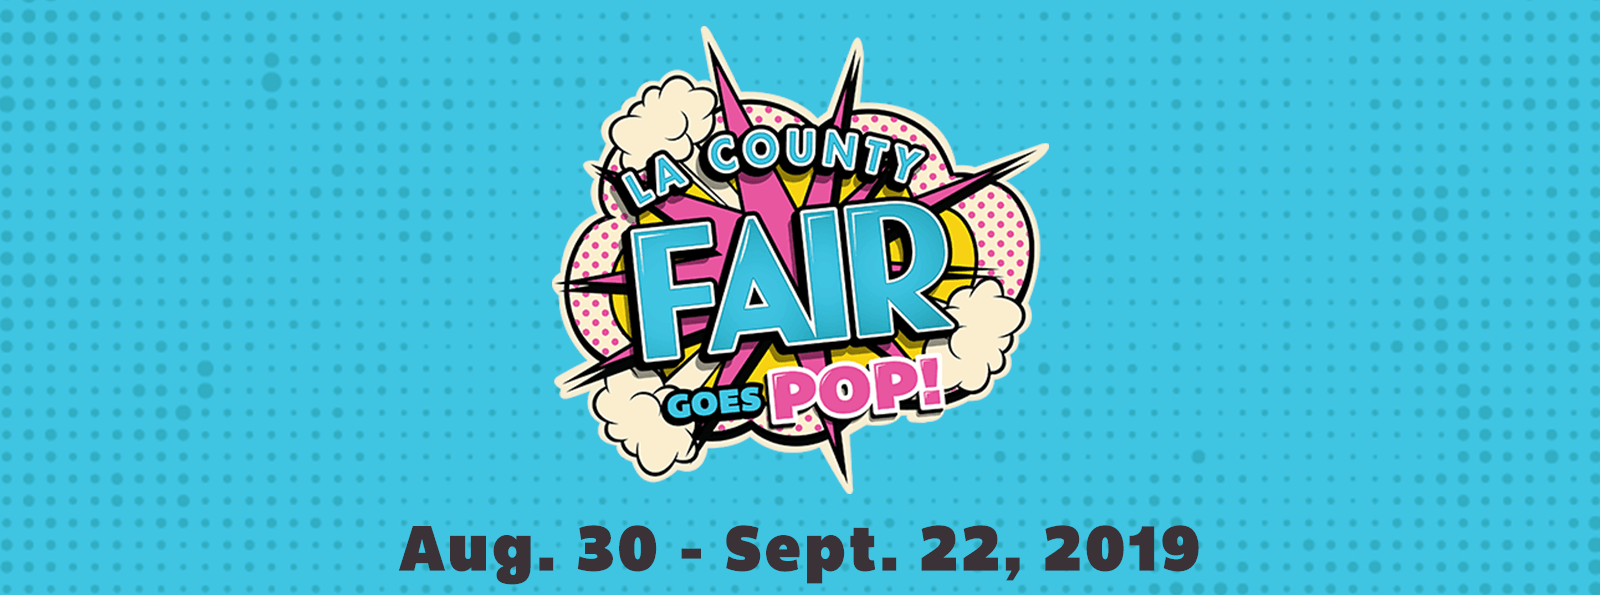 LA County Fair Goes POP!